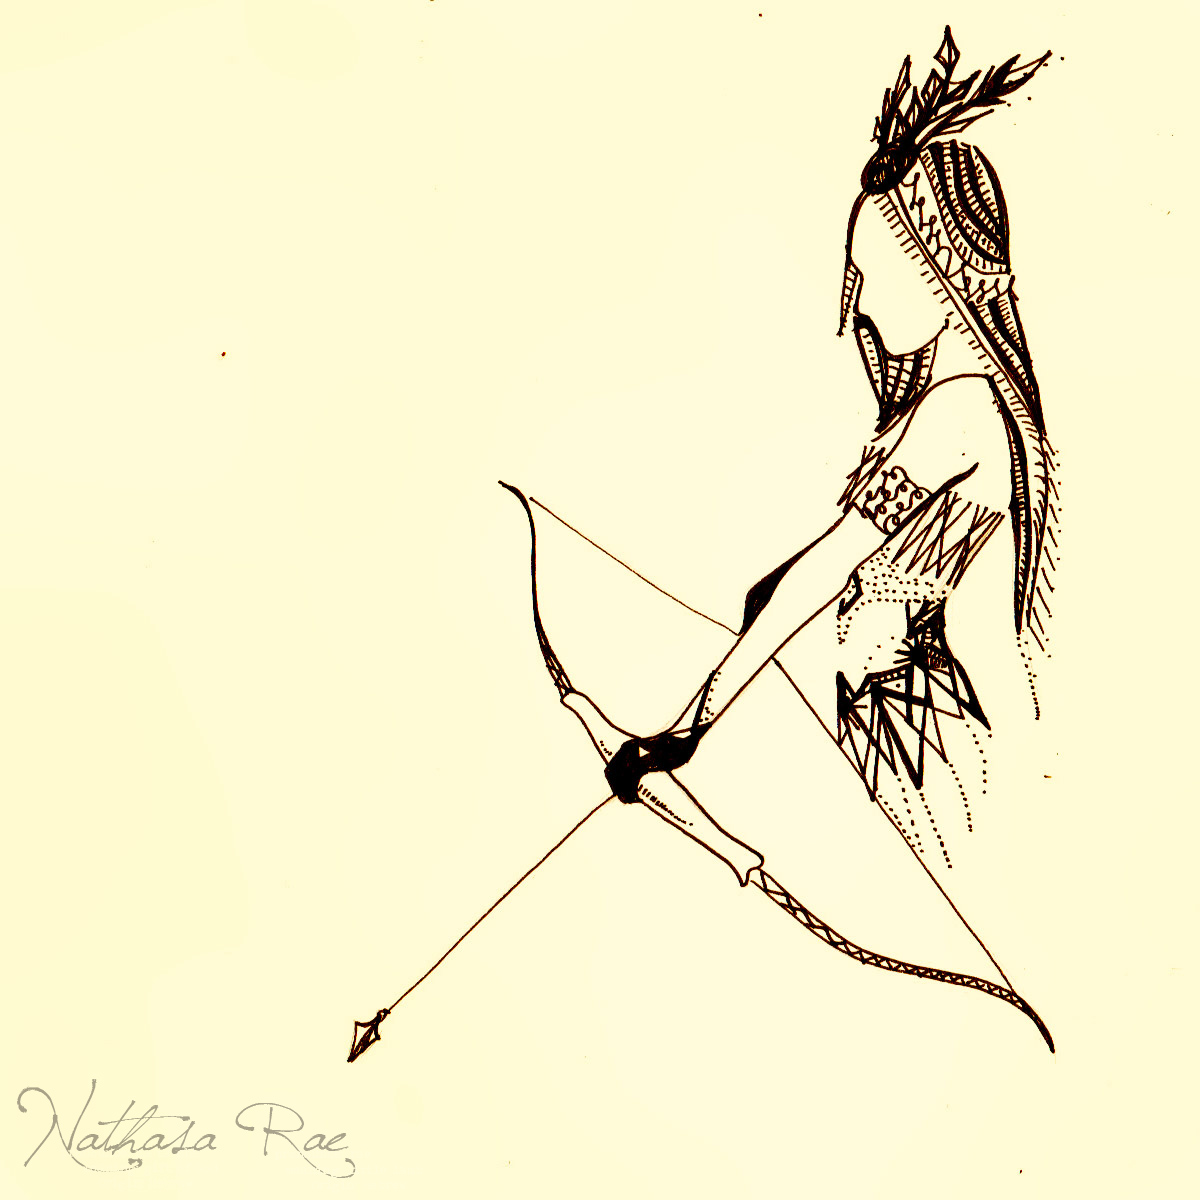 Warrior arrow clipart images picture freeuse download 17 Best images about Tattoos on Pinterest | Leo symbol, Arrow ... picture freeuse download